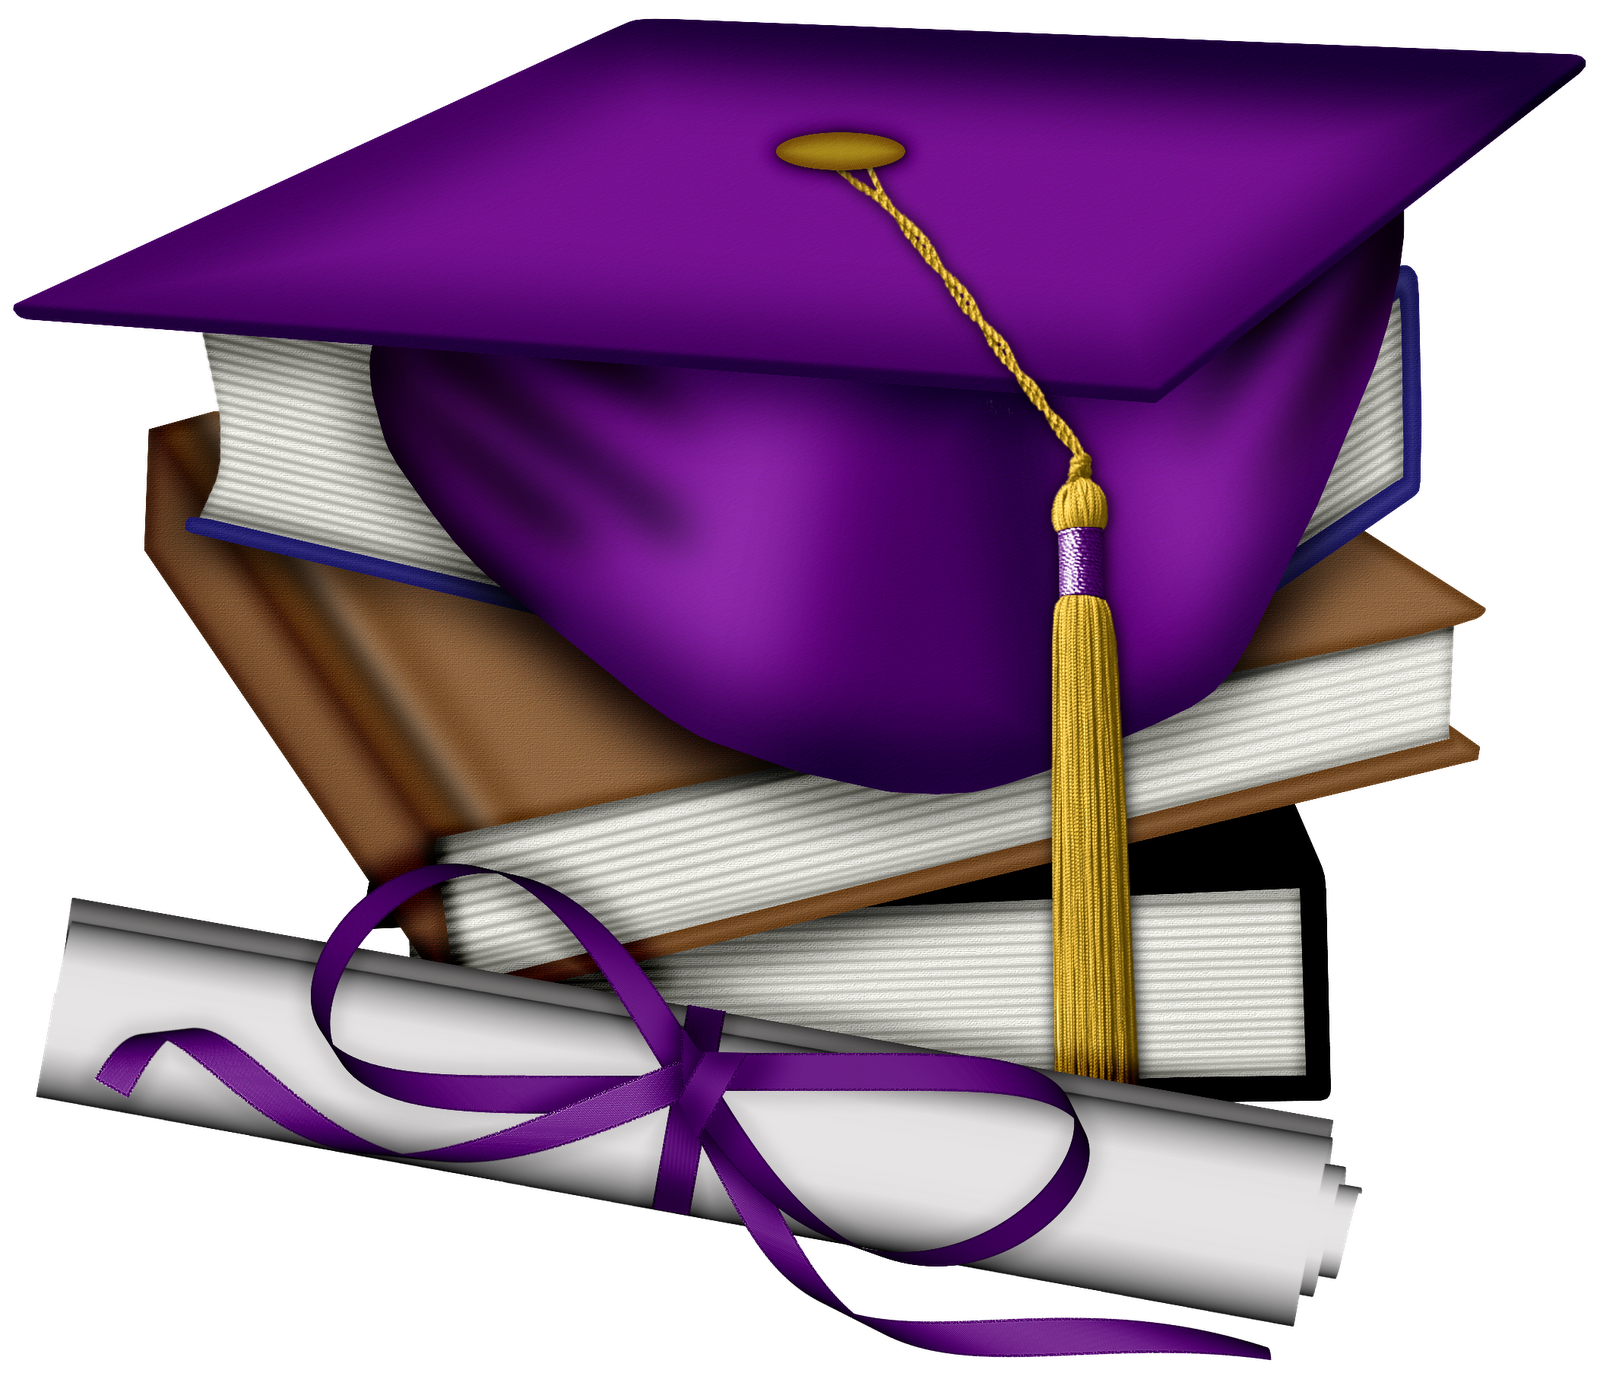 Congratulations clipart grad. Animated purple graduation cap